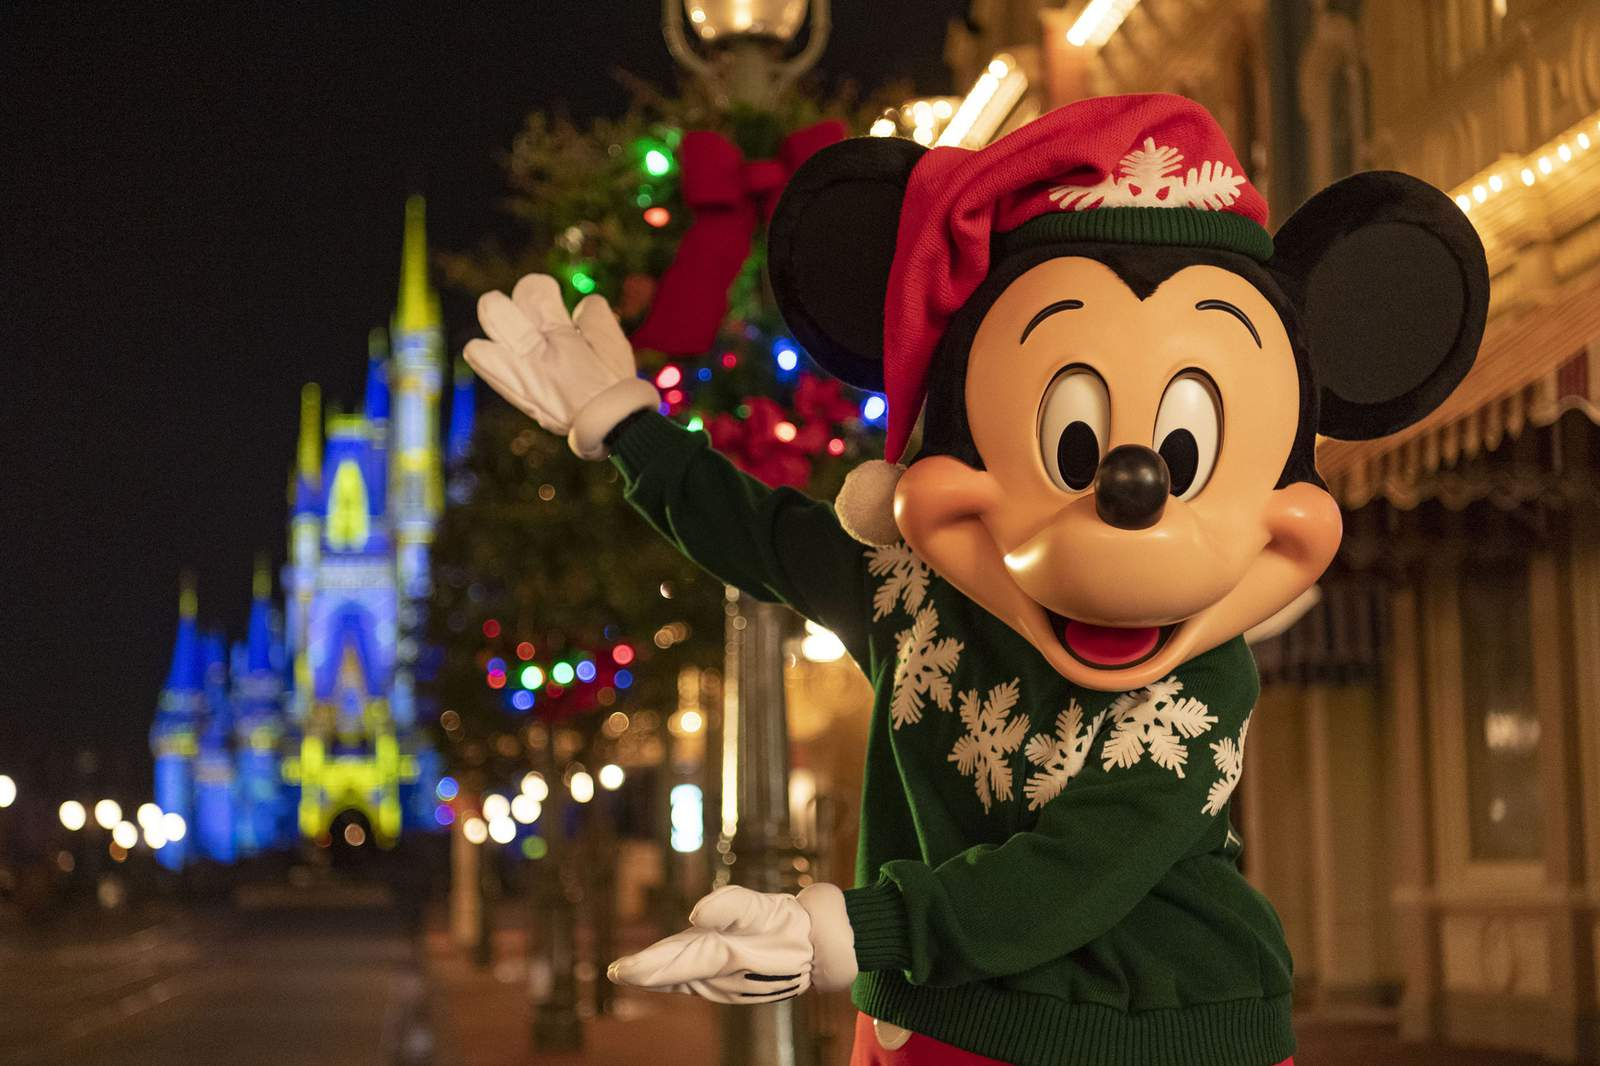 Disneyworld Christmas Vacation 2020 Deck the halls: Walt Disney World reimagines 2020 holiday celebration